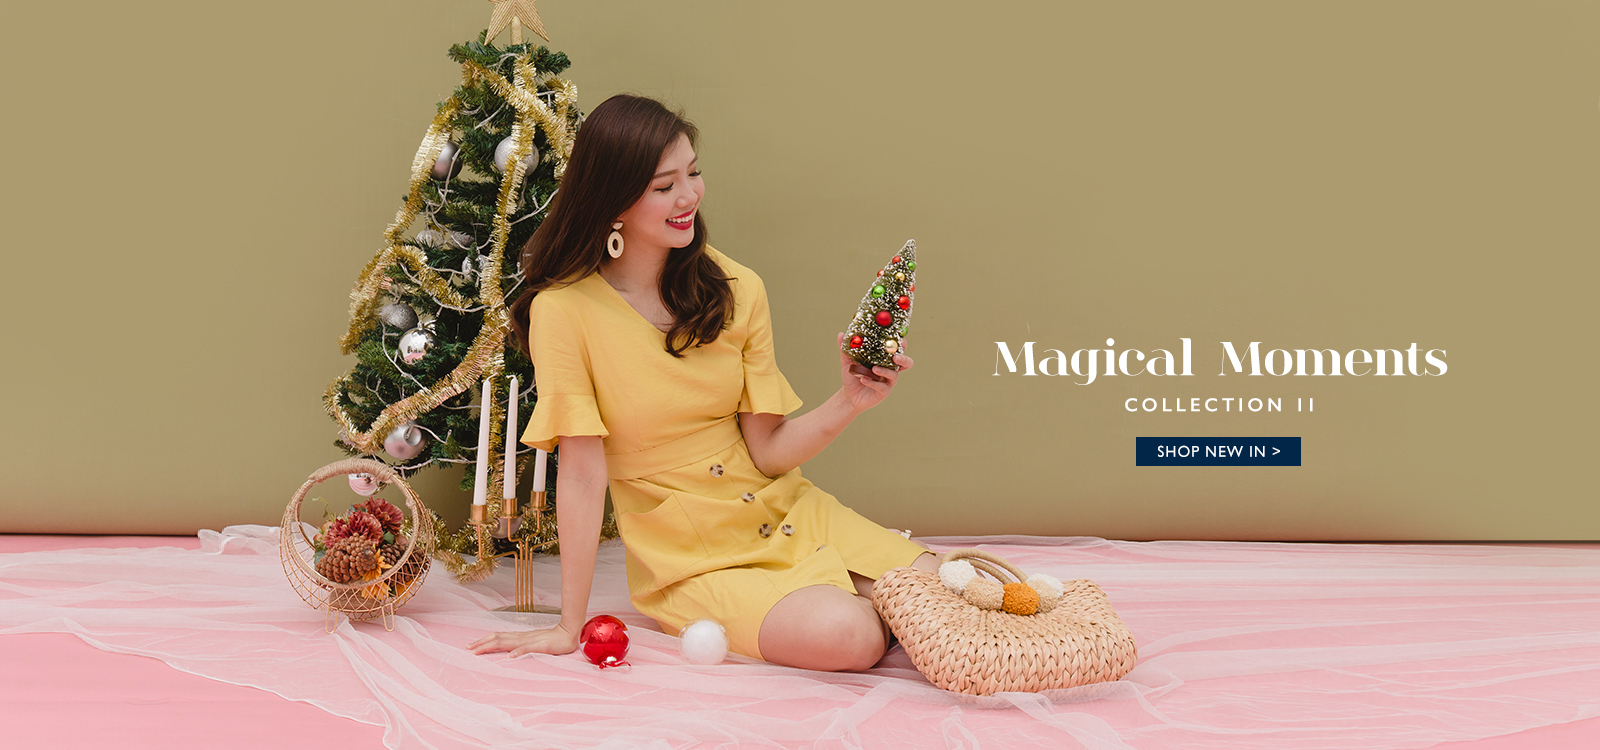 Magical Moments Collection Two prelaunch